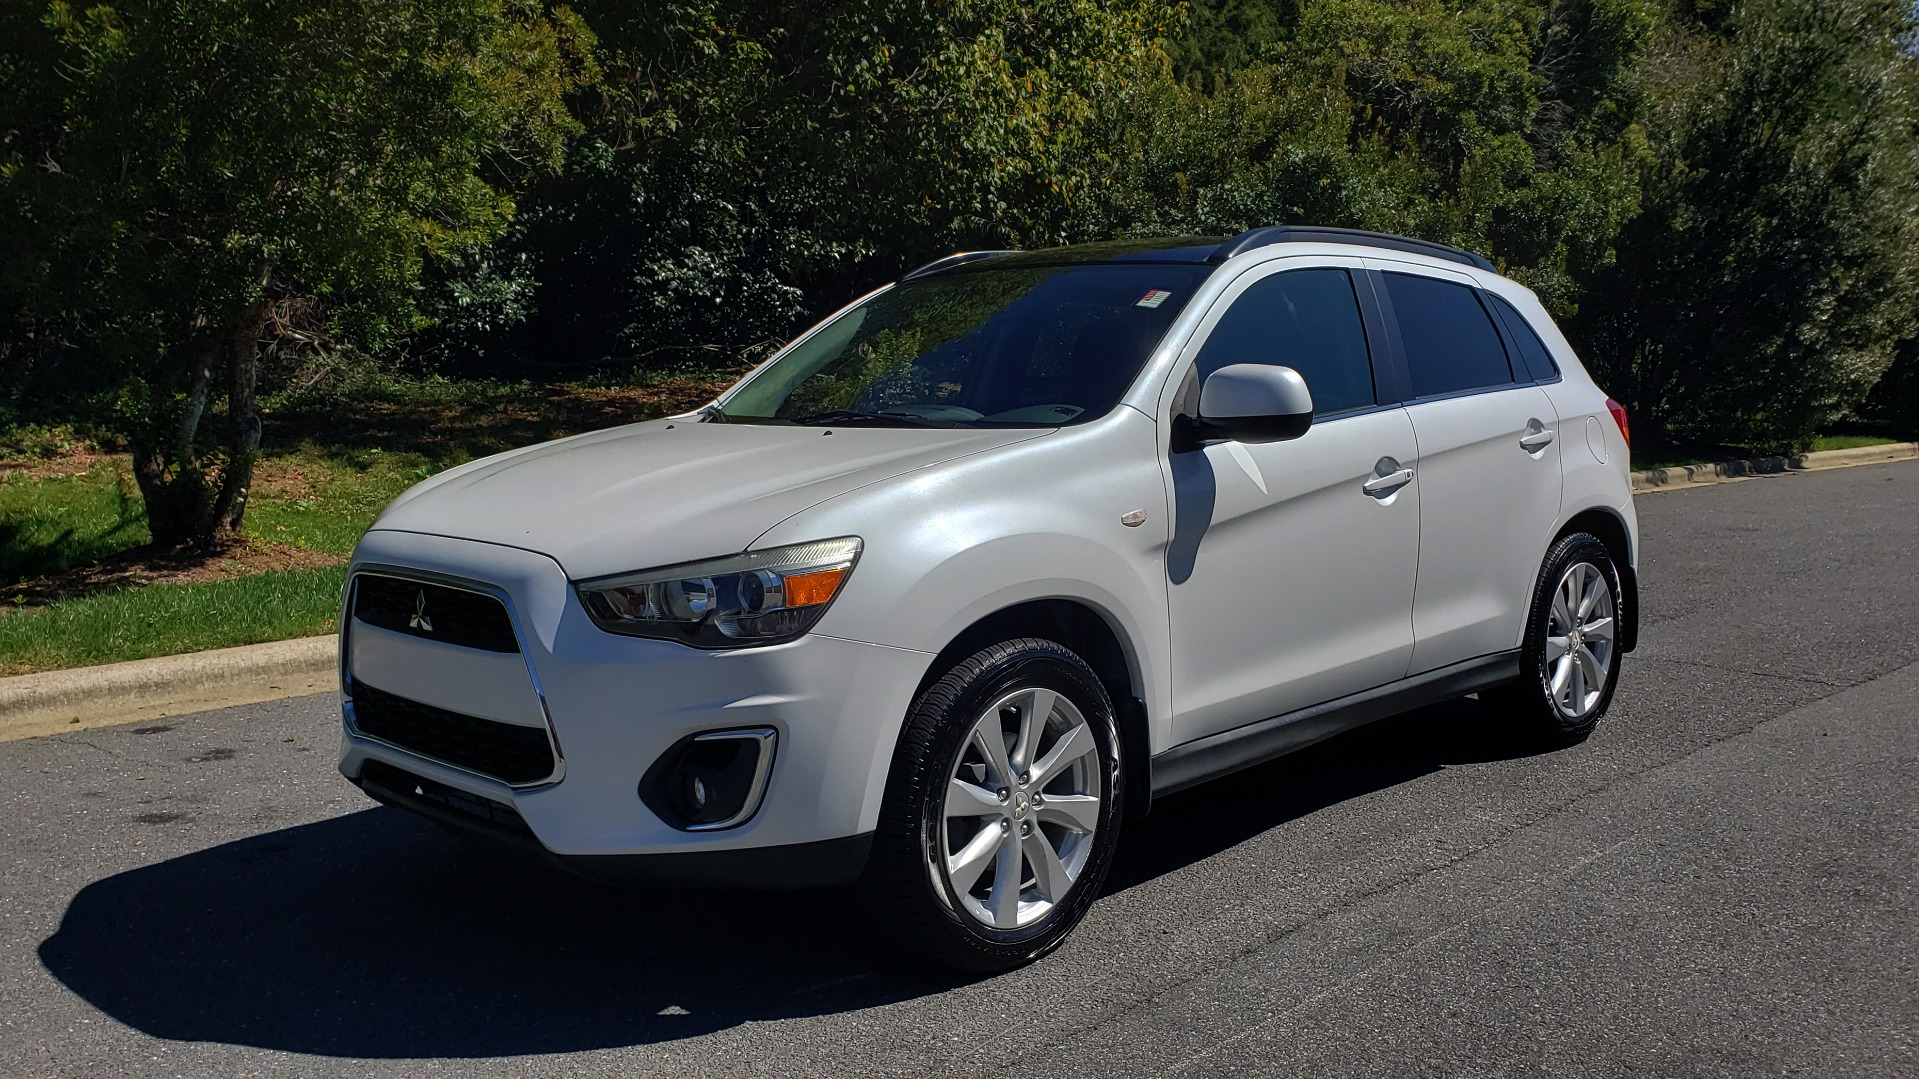 Used 2013 Mitsubishi OUTLANDER SPORT SE / 2WD / 4-DR SUV / CVT TRANS / PREMIUM SOUND / REARVIEW for sale Sold at Formula Imports in Charlotte NC 28227 1